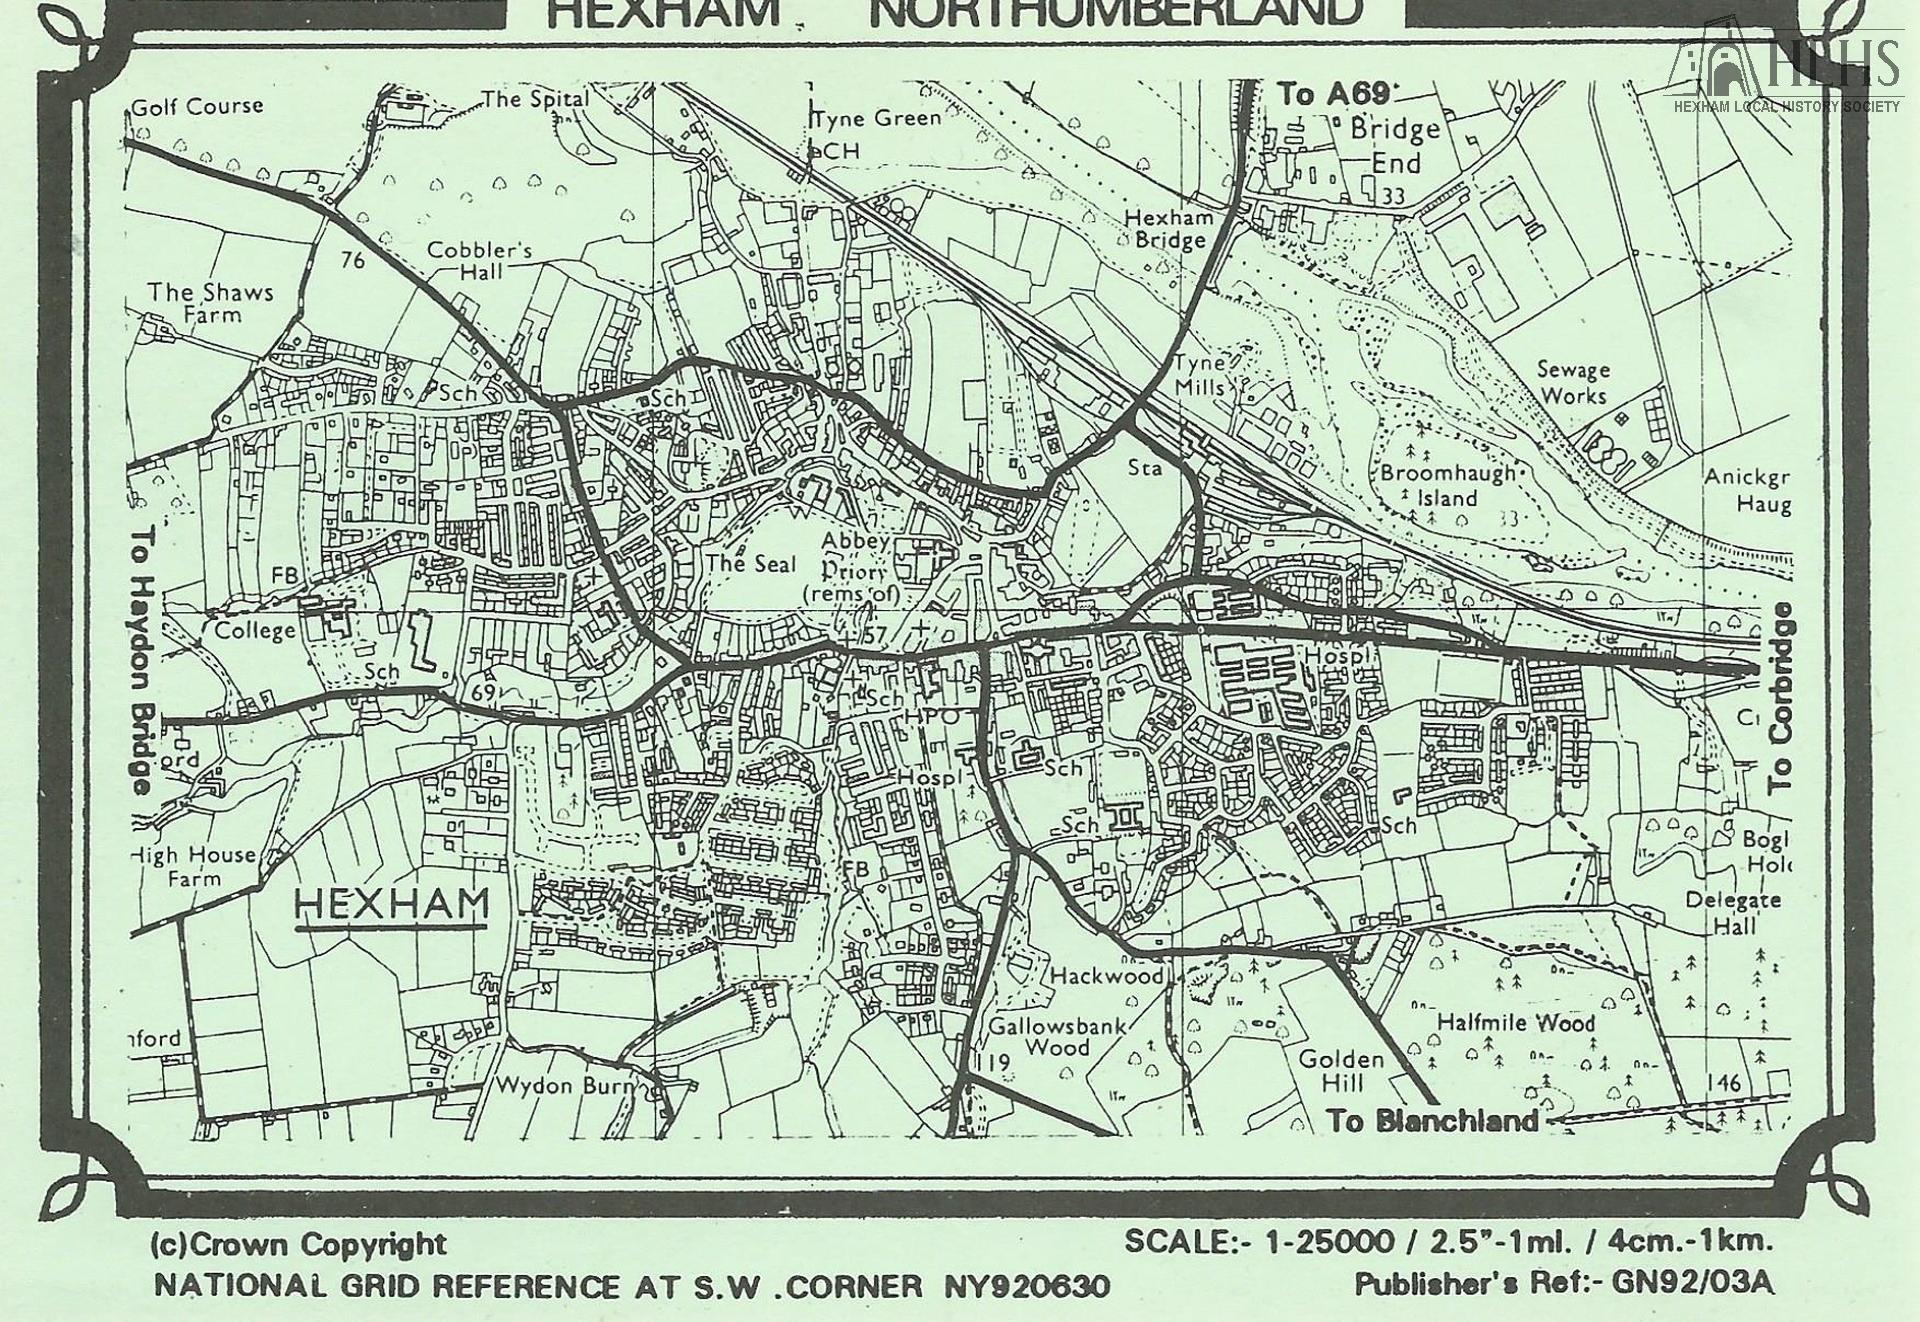 1992: Hexham, Northumberland. Ordnance Survey of town map, 1:25,000 scale, with main roads overprinted